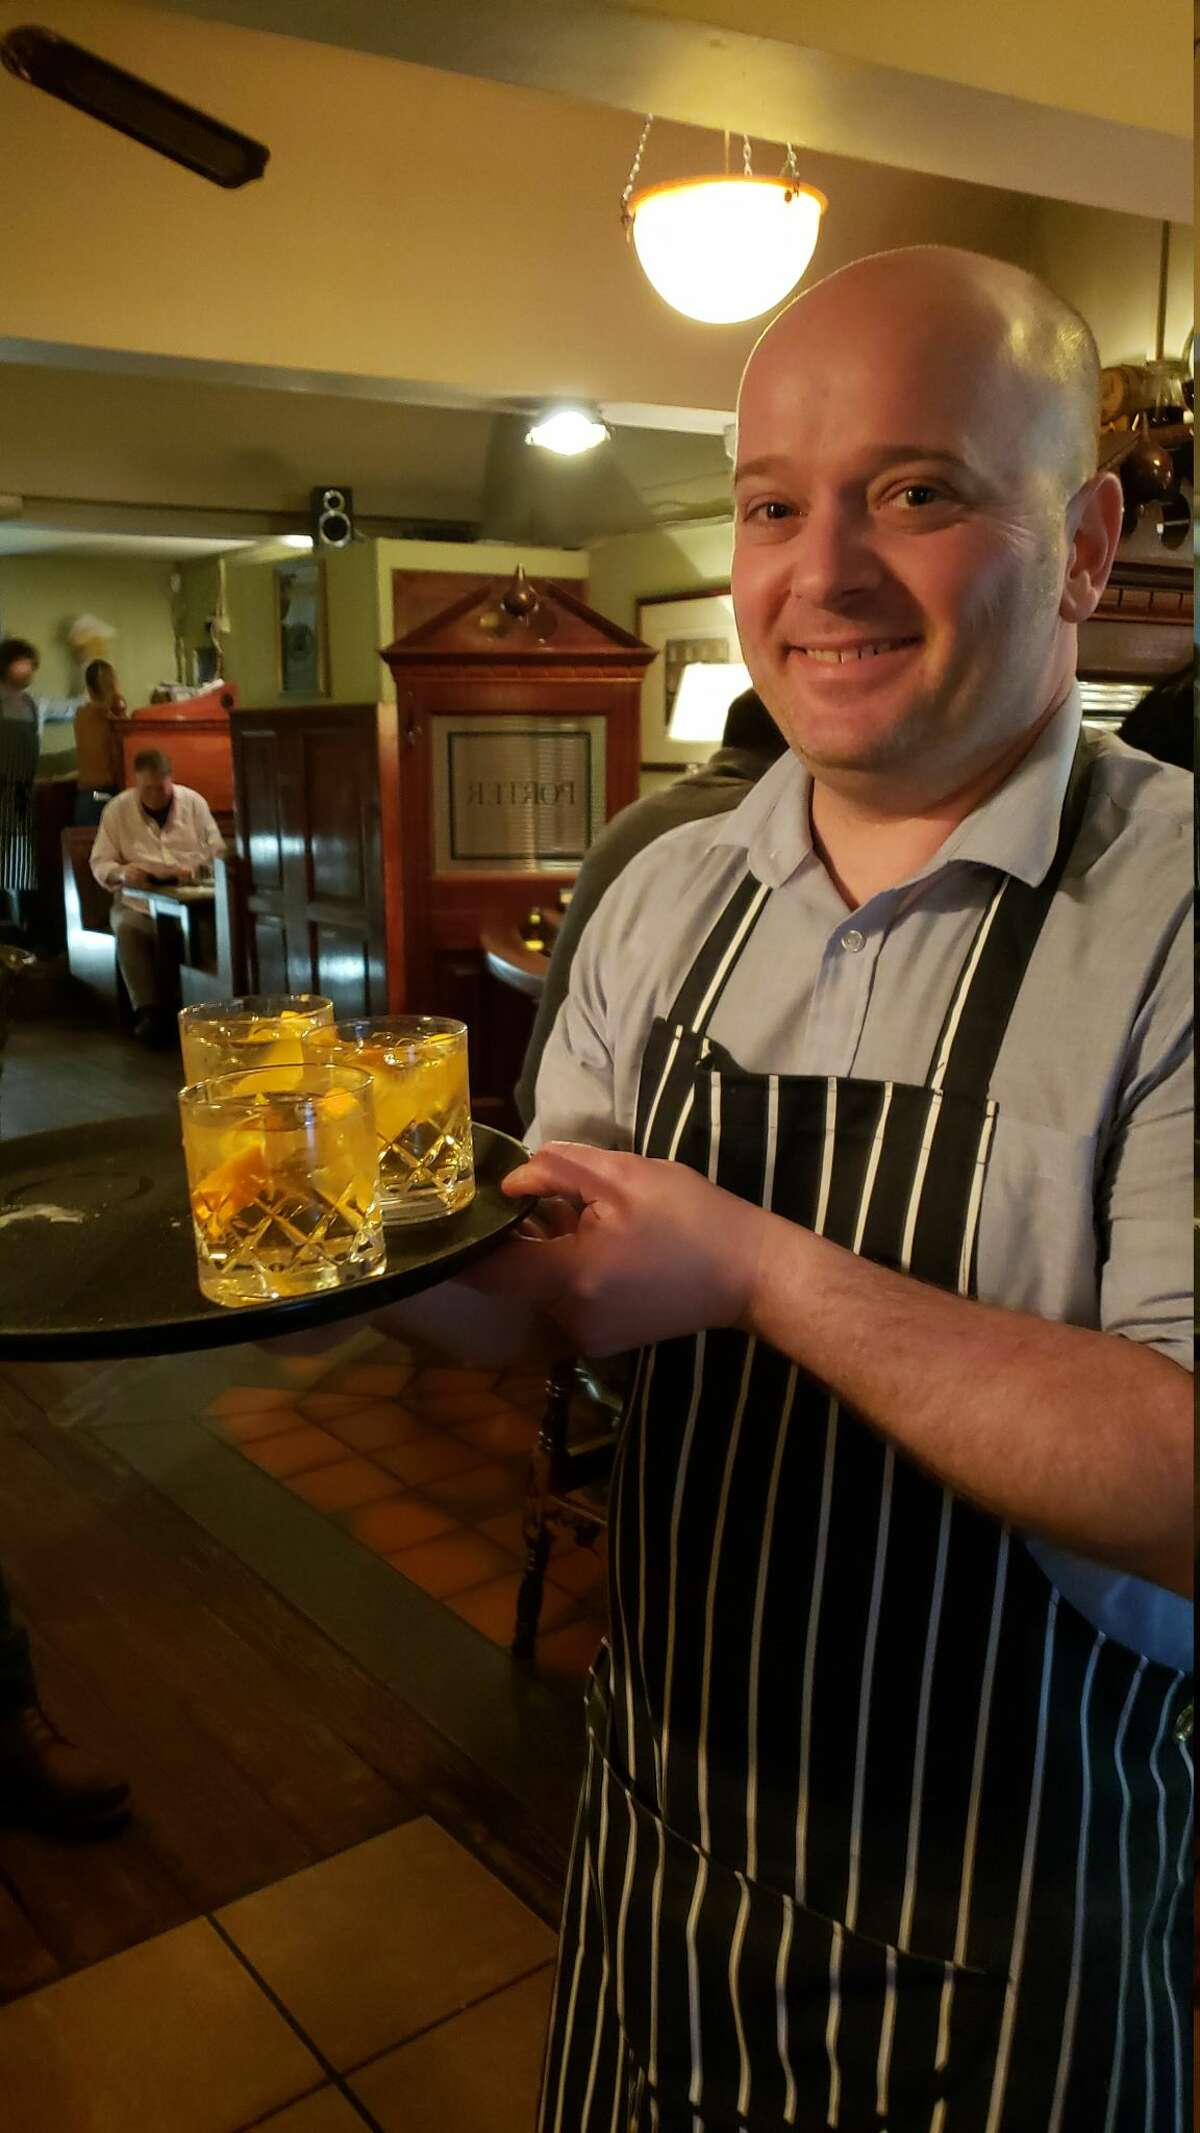 A round of Irish whiskey-based Old Fashioneds is delivered by the barman at L. Mulligan Grocer. Enjoy a cocktail in the downstairs pub, then head upstairs for dinner. The menu changes frequently to reflect the local seasons, but Scotch eggs are always available and complimentary chips are offered at the end of the meal To-Go.